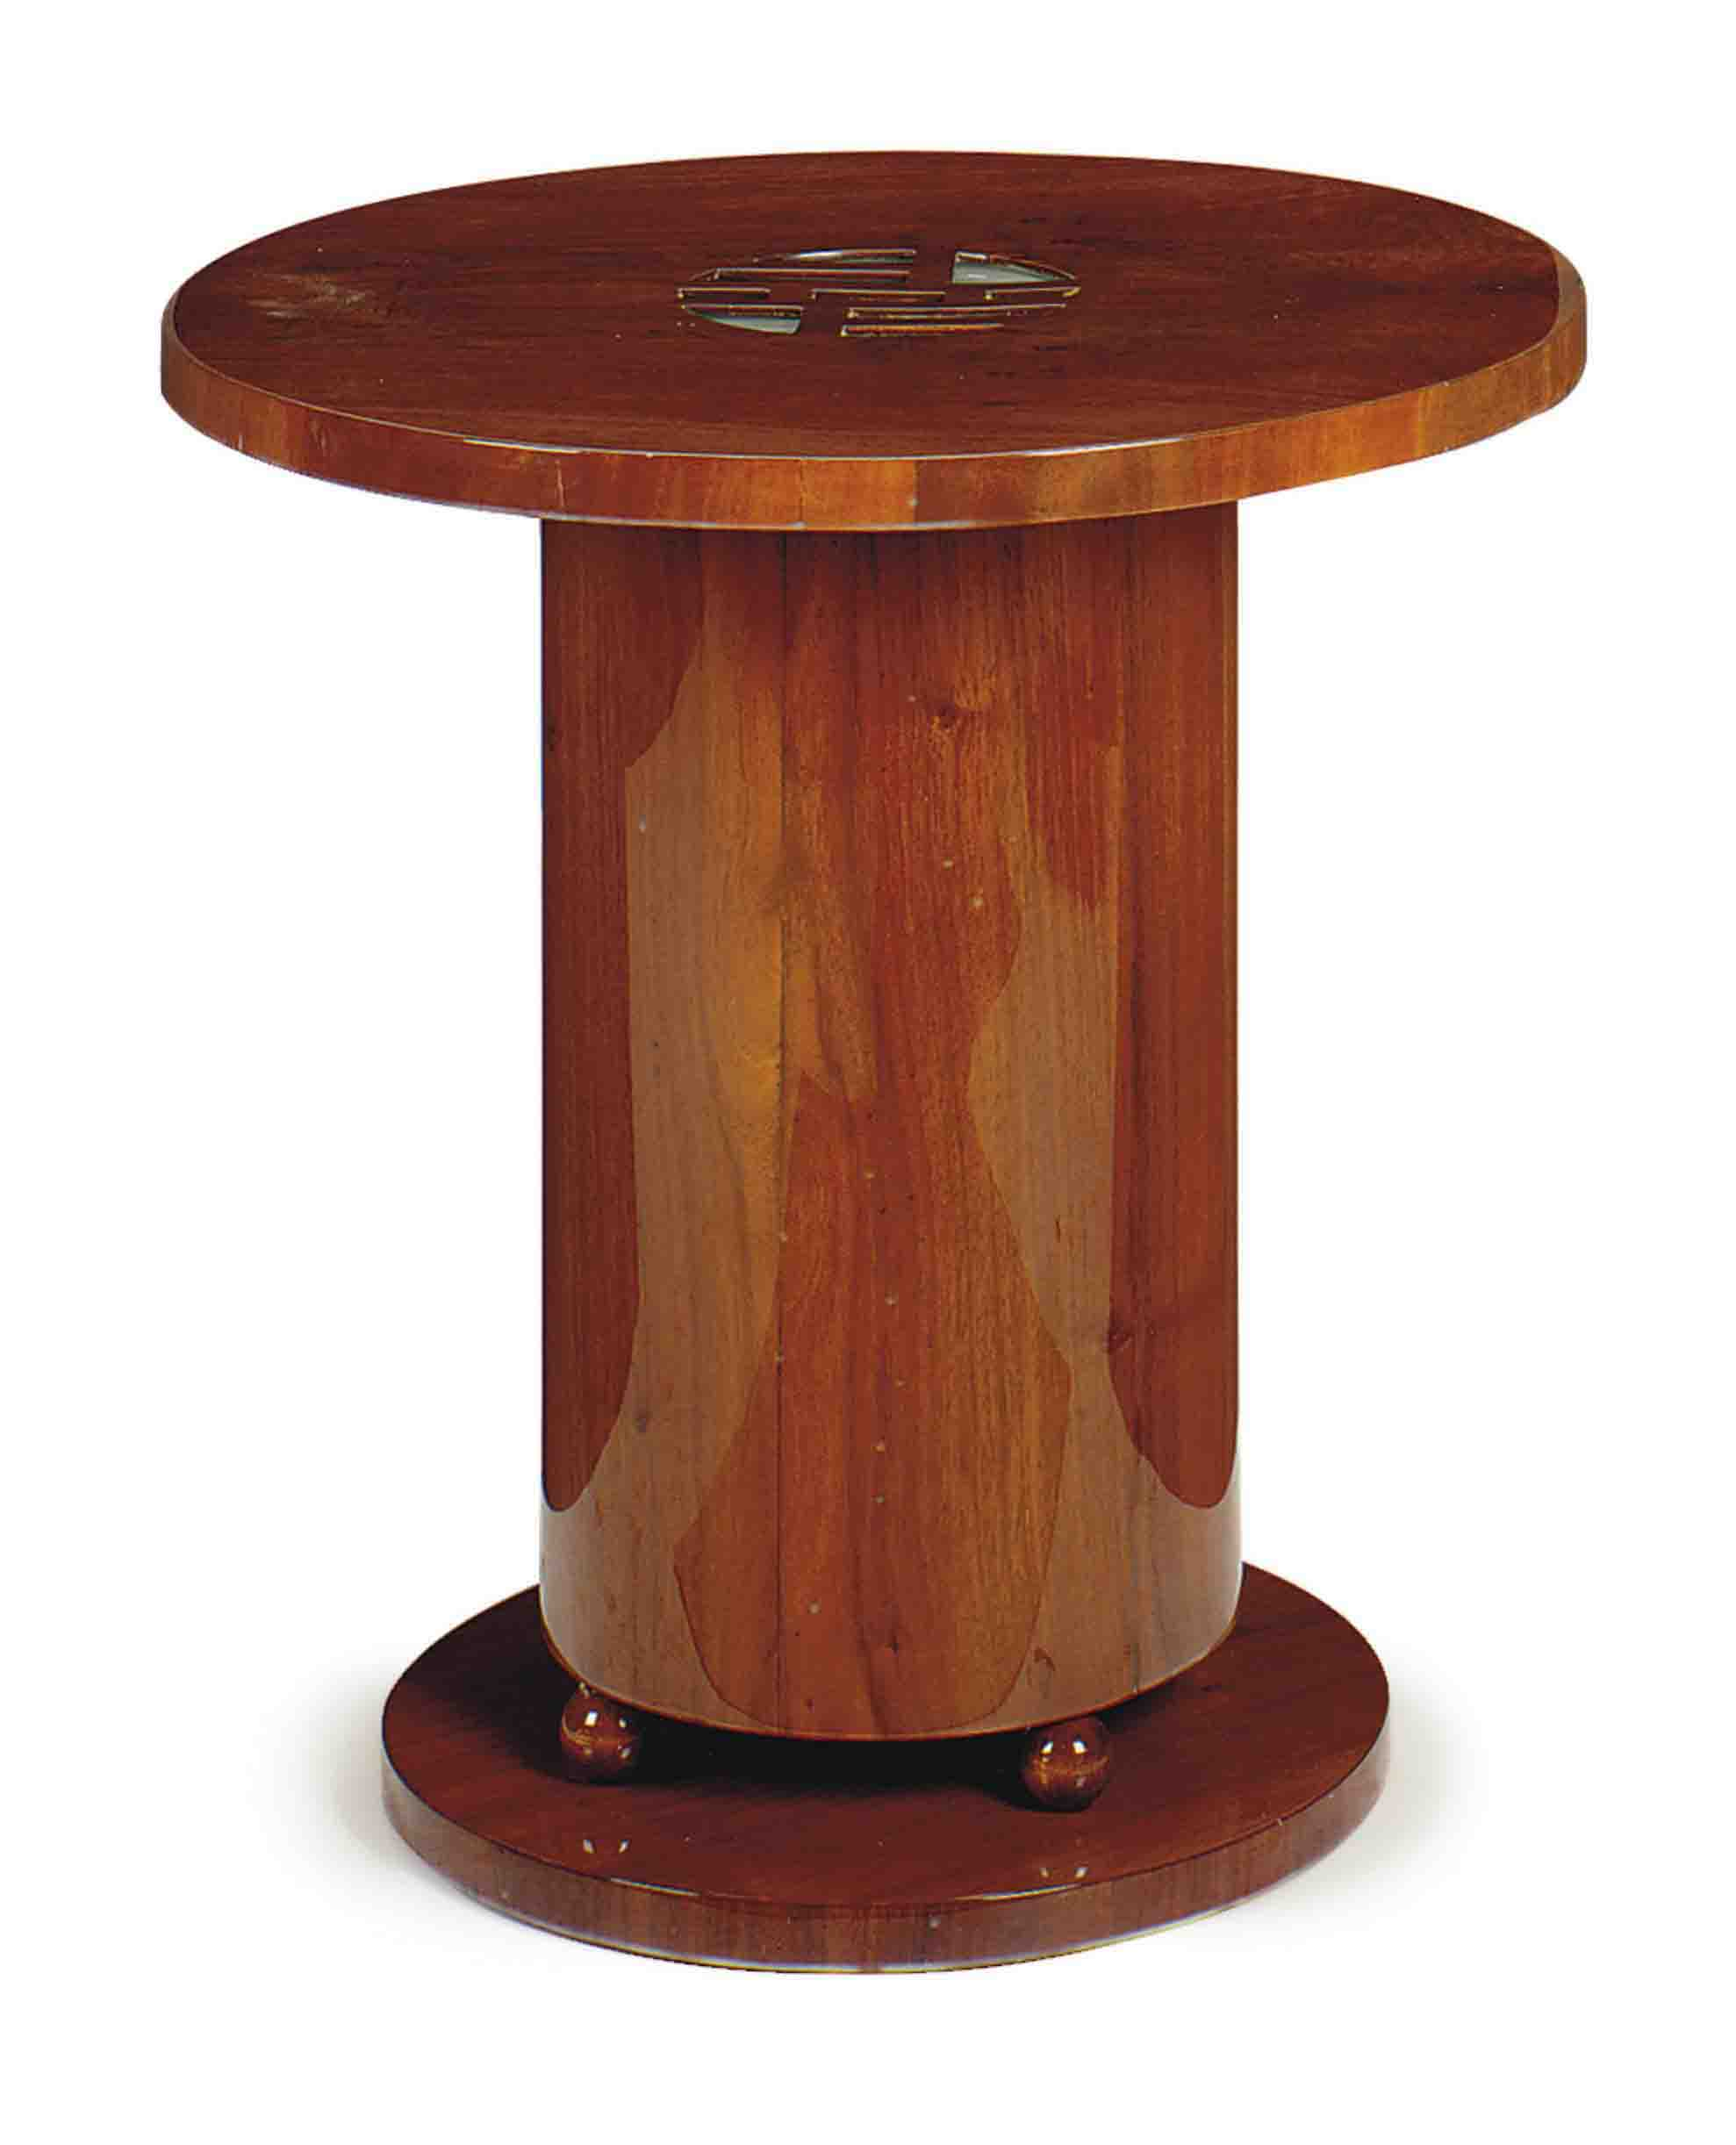 A FRENCH ILLUMINATED CIRCULAR SIDE TABLE,